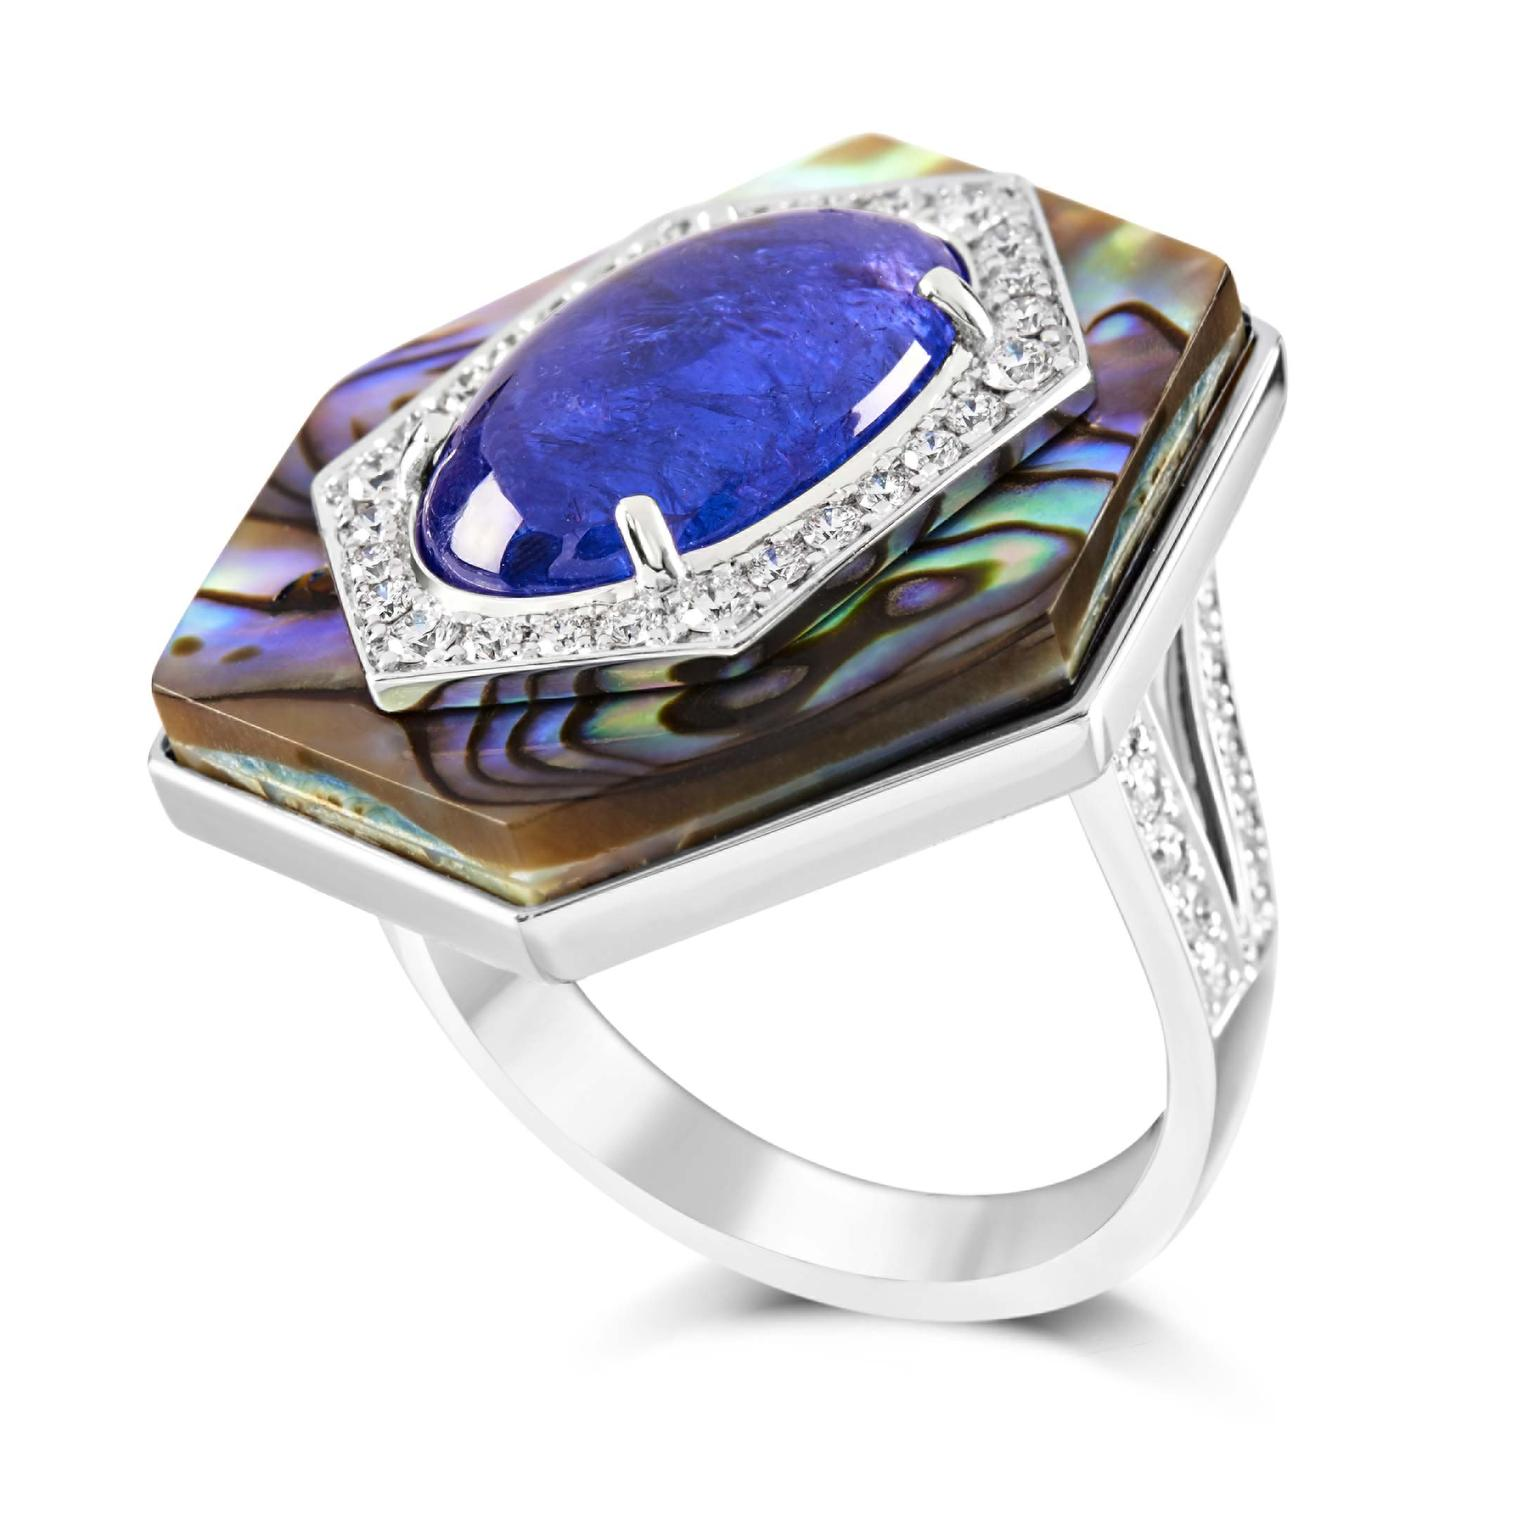 Engagment ring with tanzanite and diamonds from Ananya